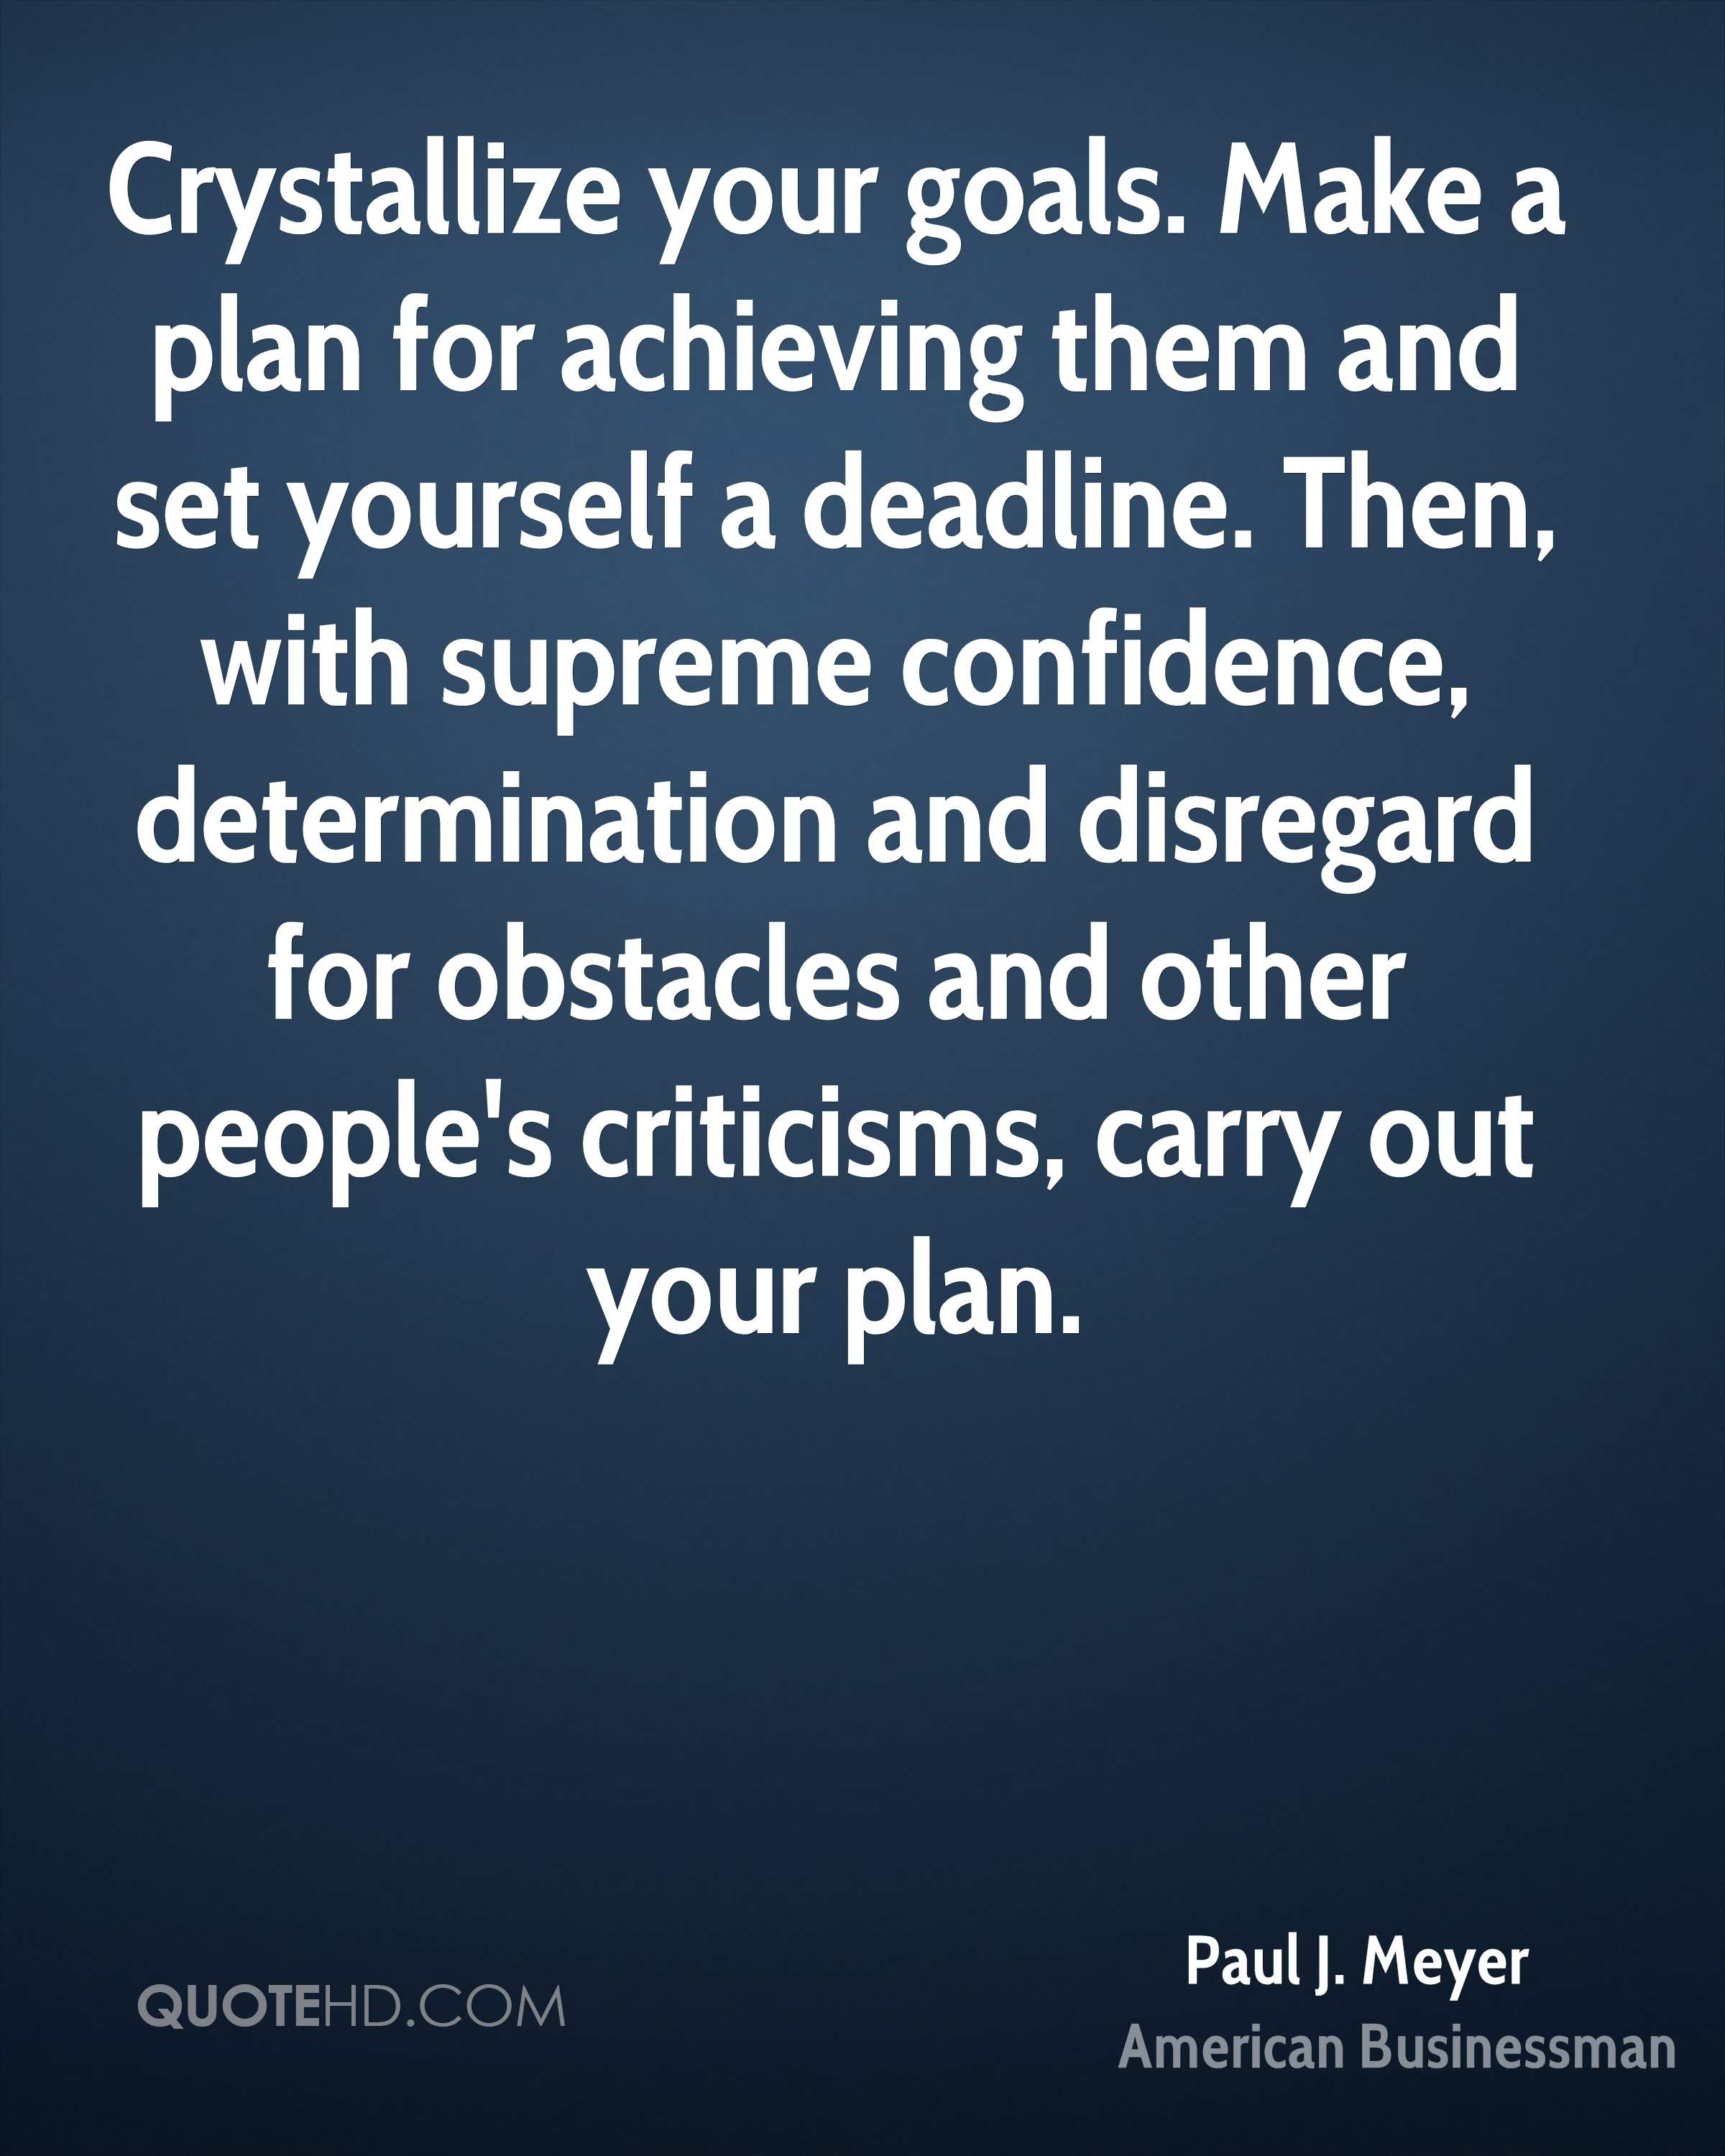 Crystallize your goals. Make a plan for achieving them and set yourself a deadline. Then, with supreme confidence, determination and disregard for obstacles and other people's criticisms, carry out your plan.